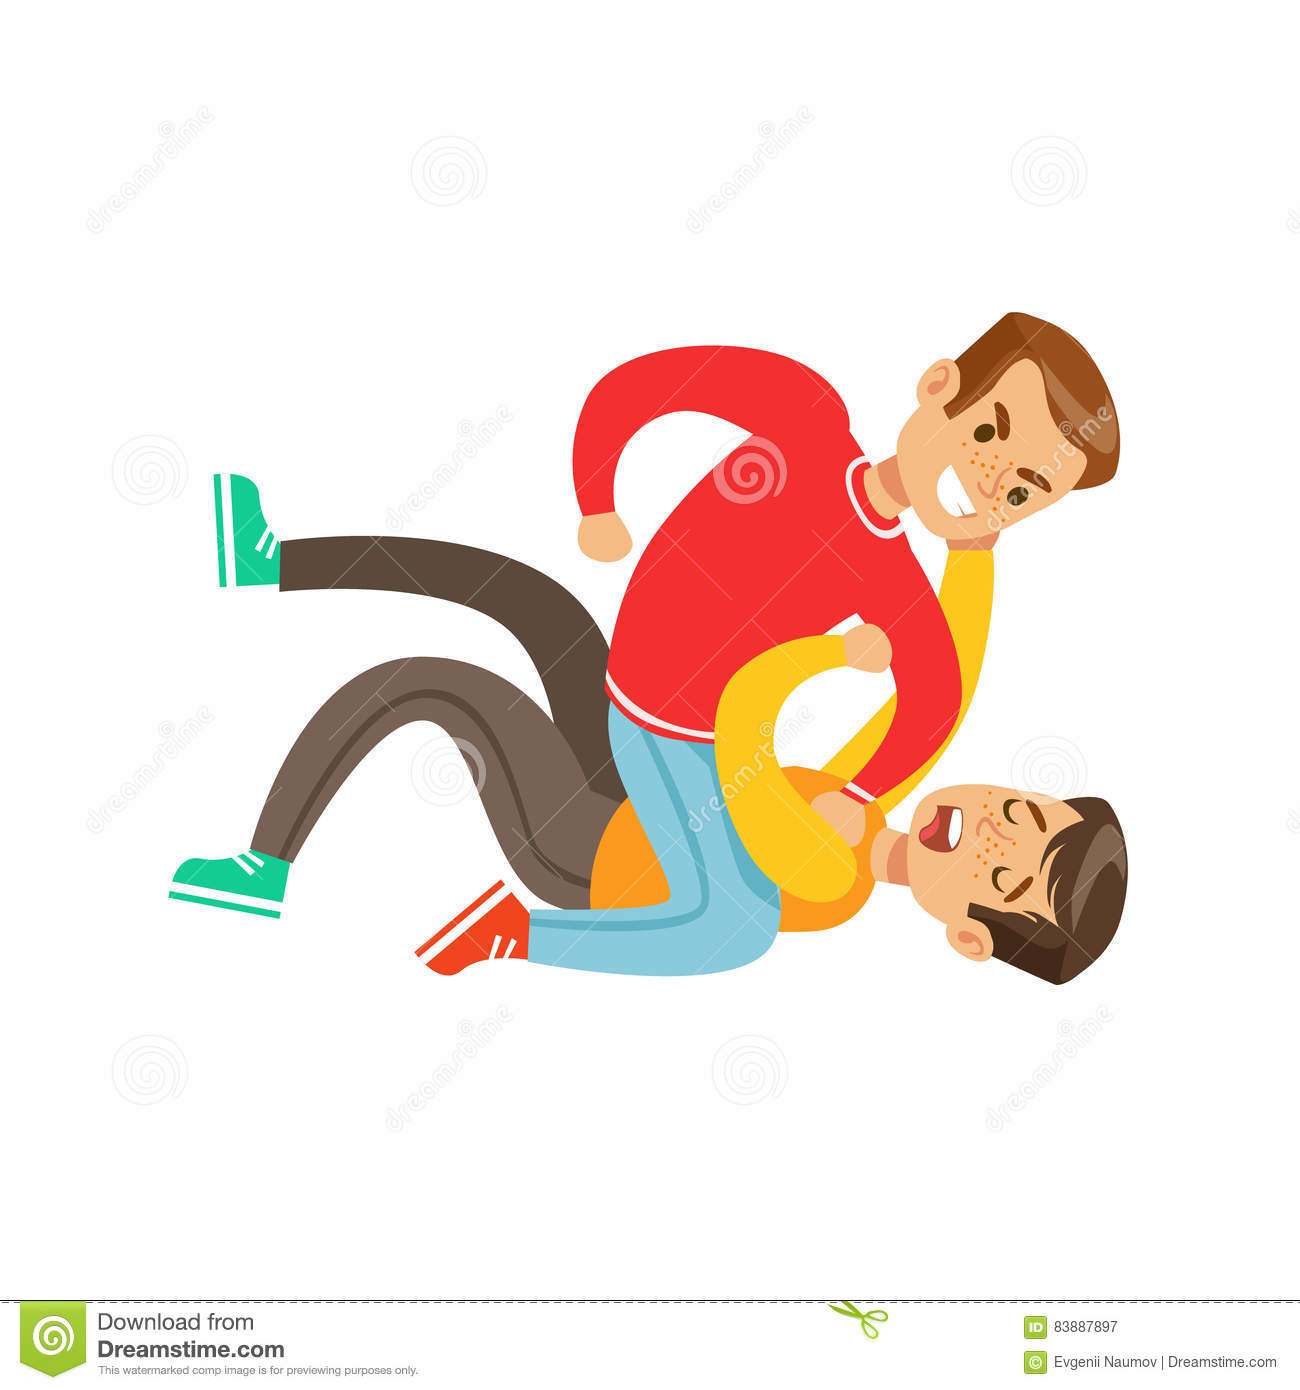 Two Boys Fist Fight Positions, Aggressive Bully In Long Sleeve Red Top  Fighting Another Kid